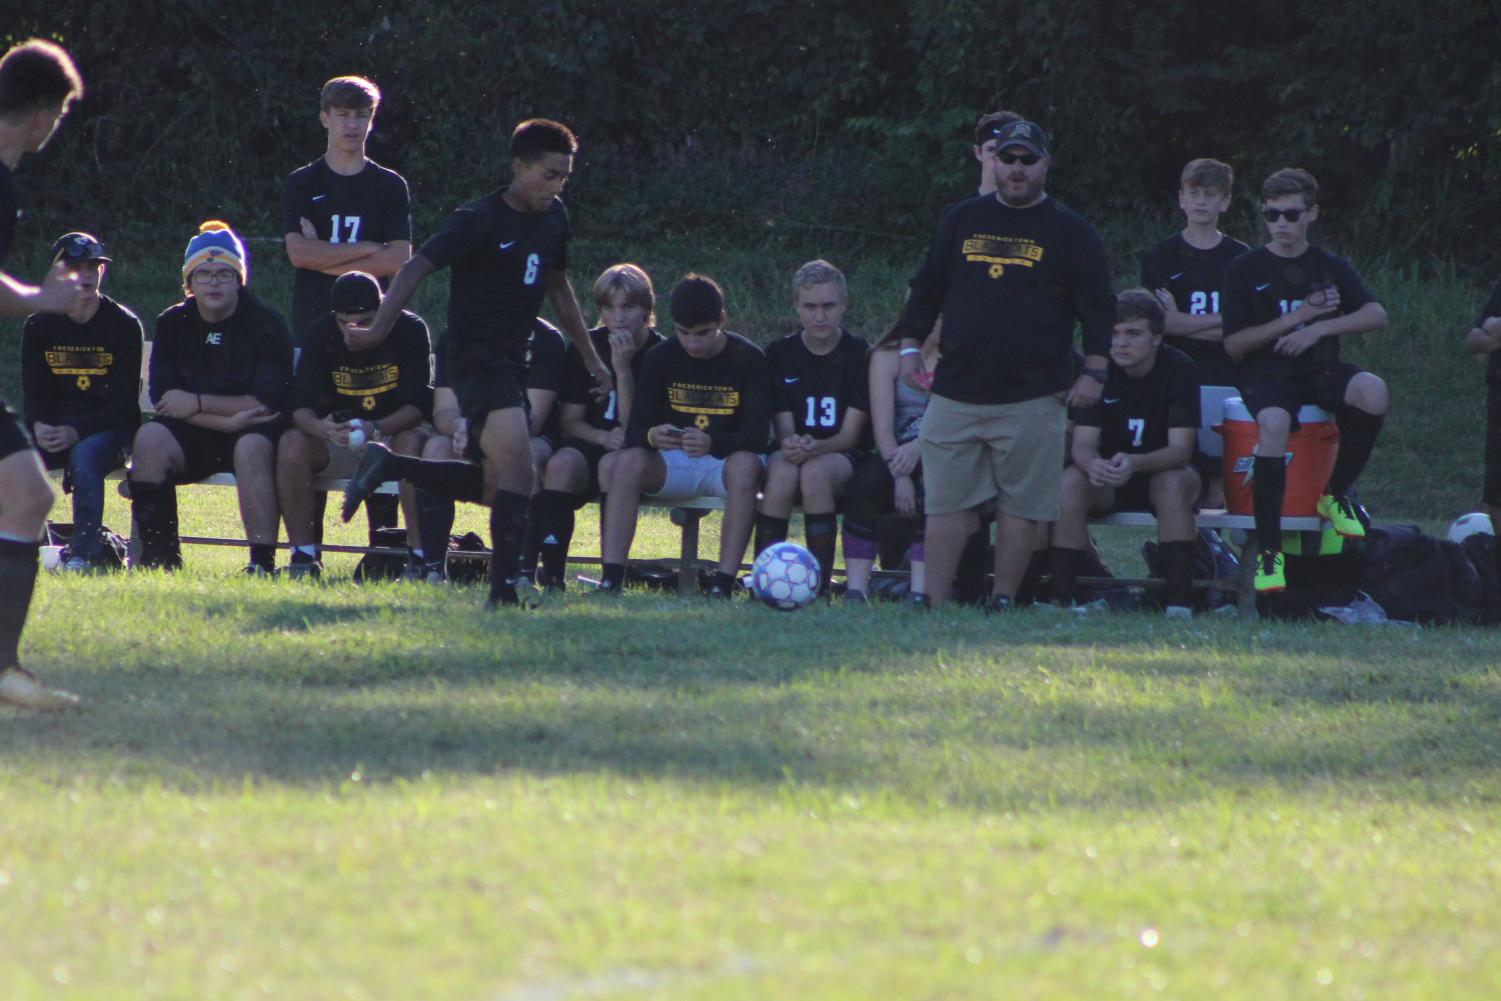 The FHS Soccer team sitting during a game